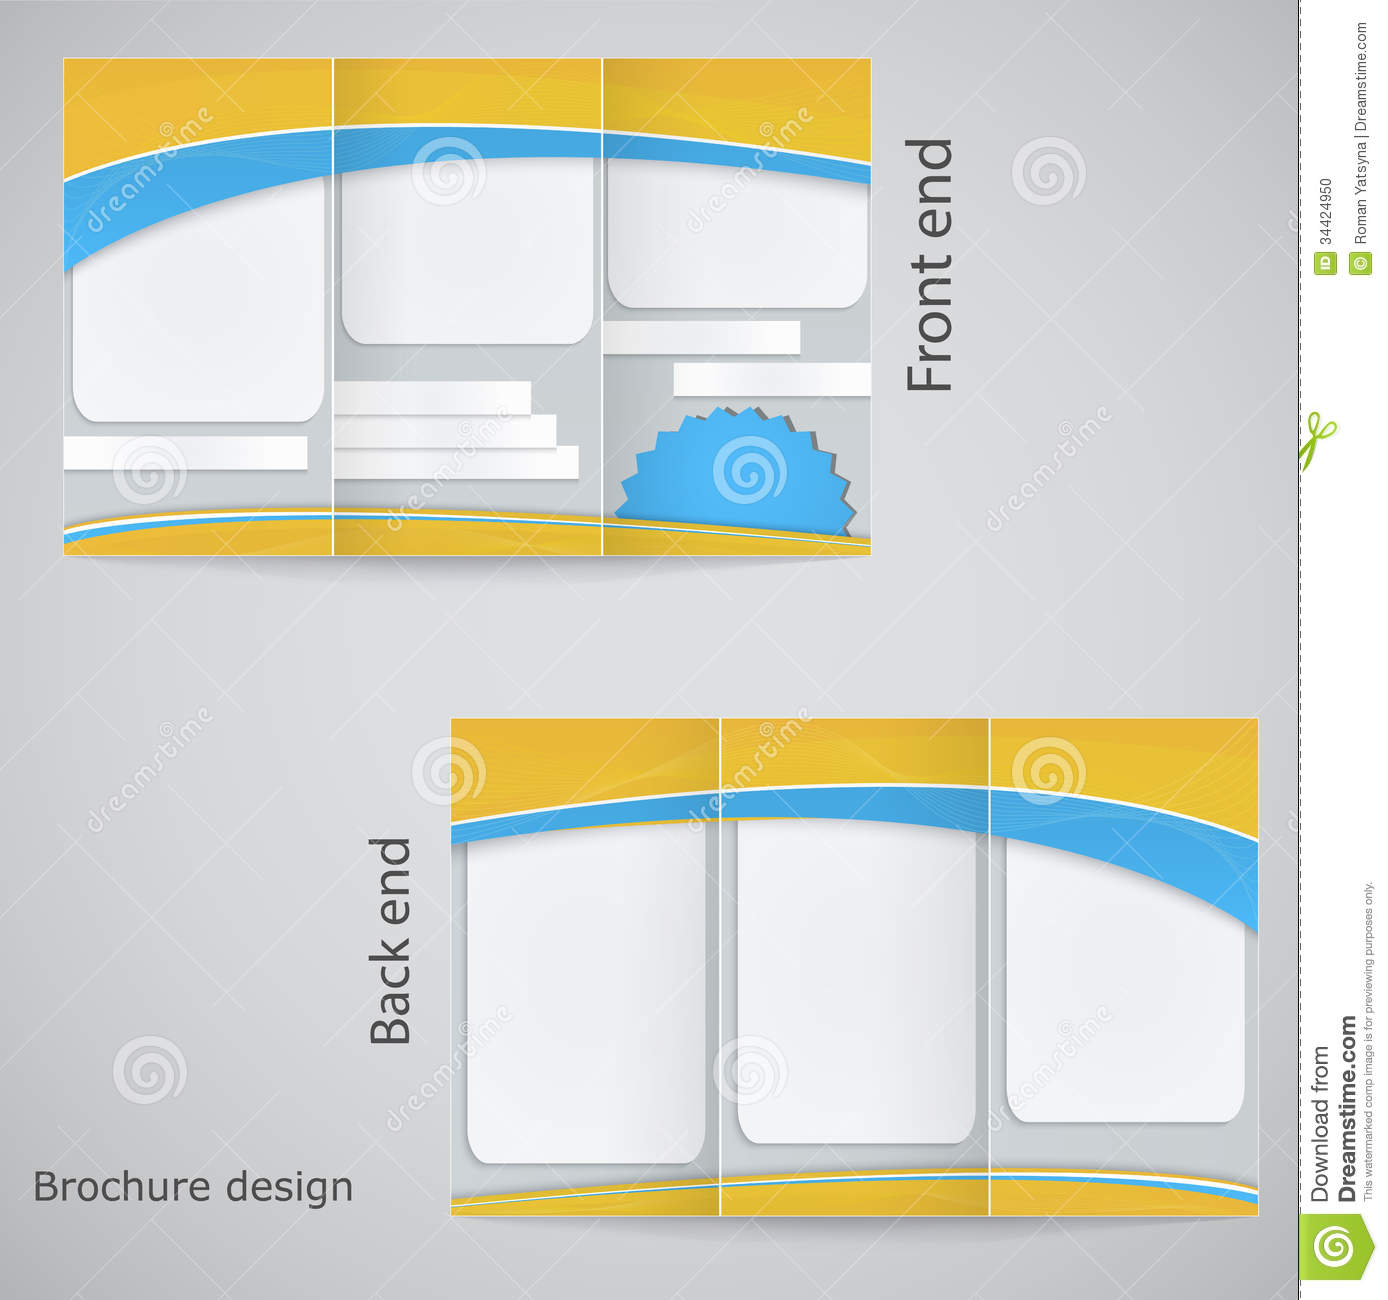 Tri fold brochure design stock vector image of branding for Free tri fold brochure design templates